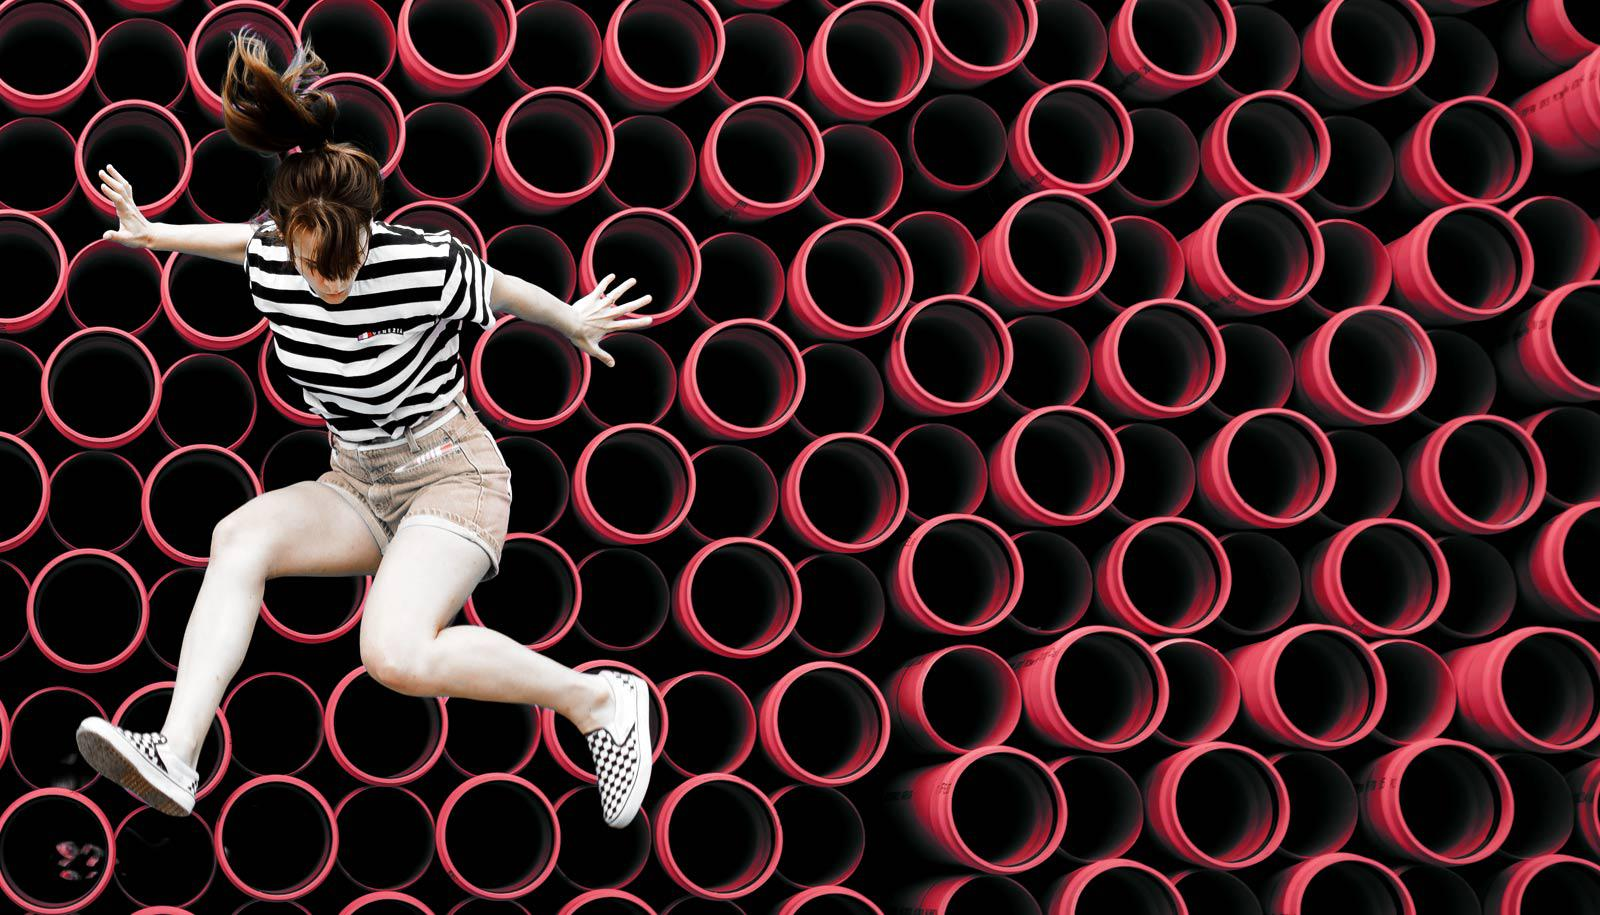 young woman on top of red tubes - blood vessels youth concept